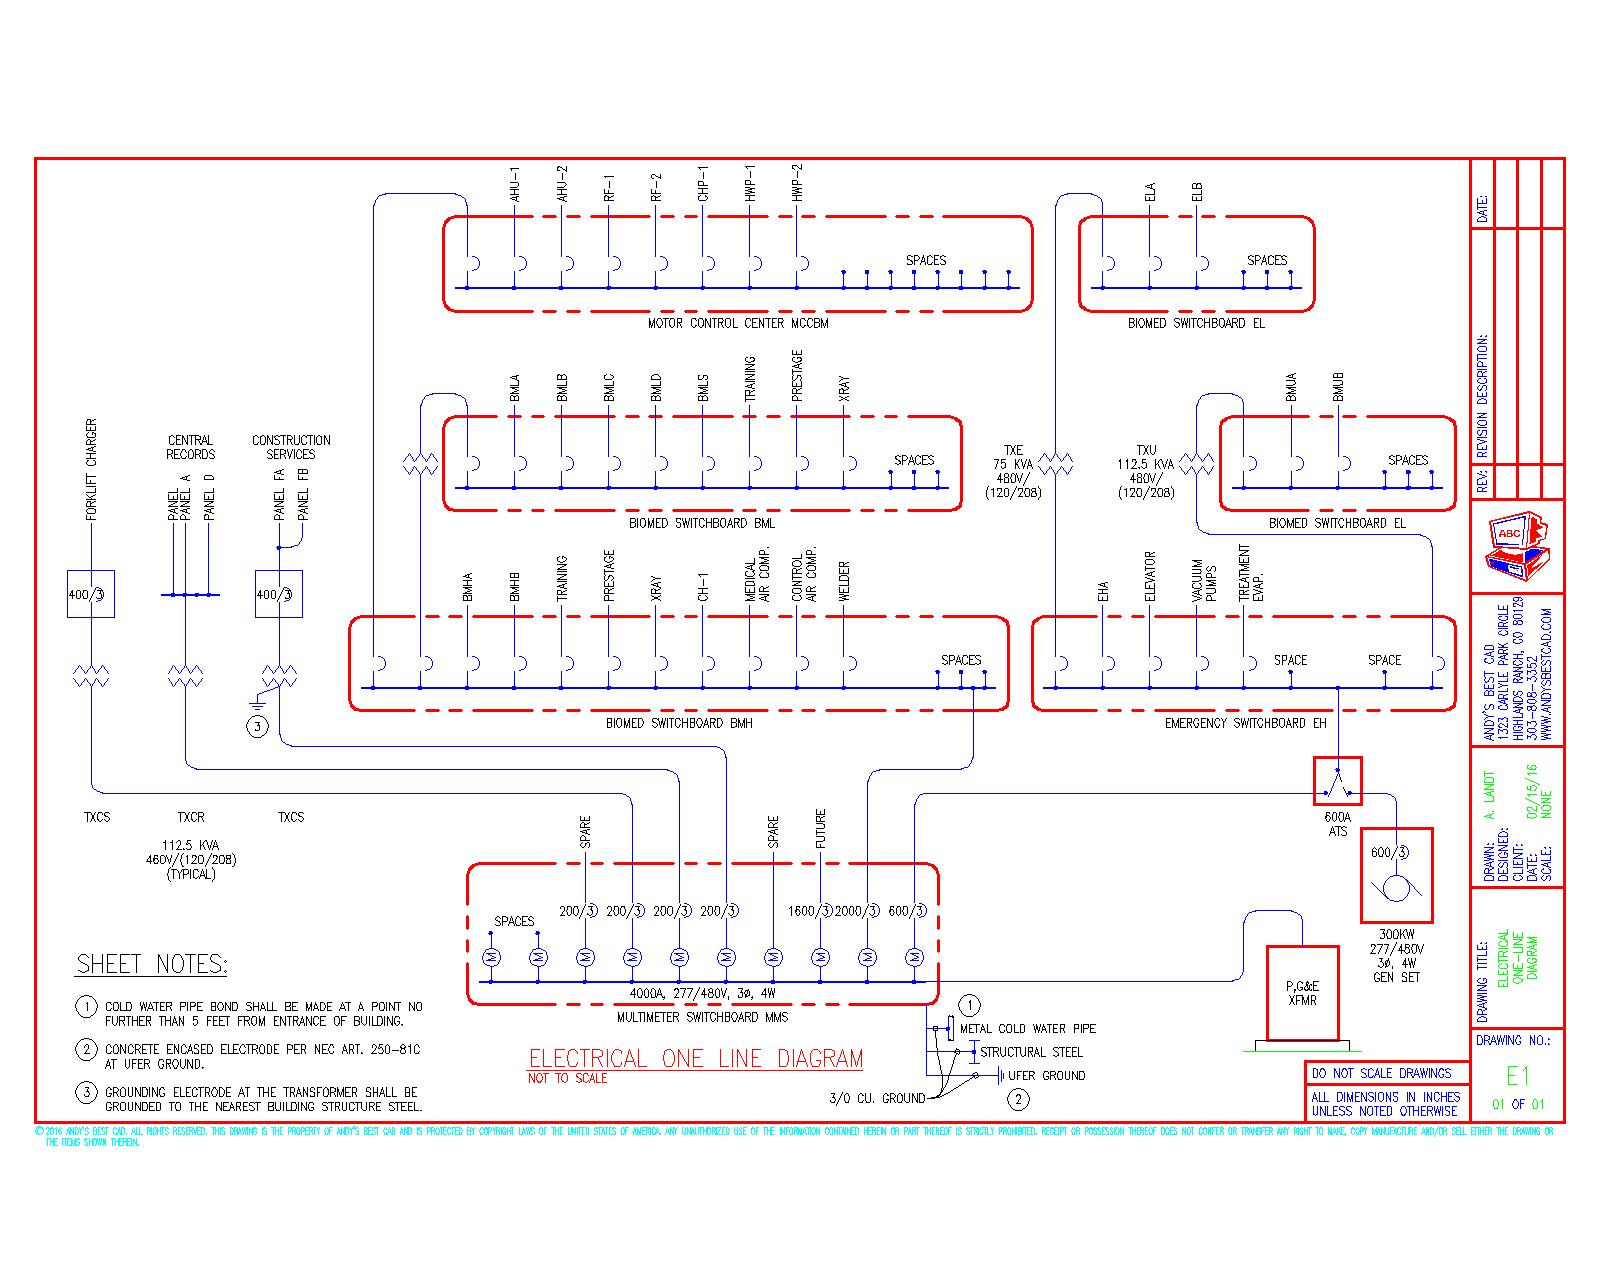 Hvac Duct Drawing Example Sample At Free For Personal Use 1600x1280 Autocad Electrical Drafting Samples